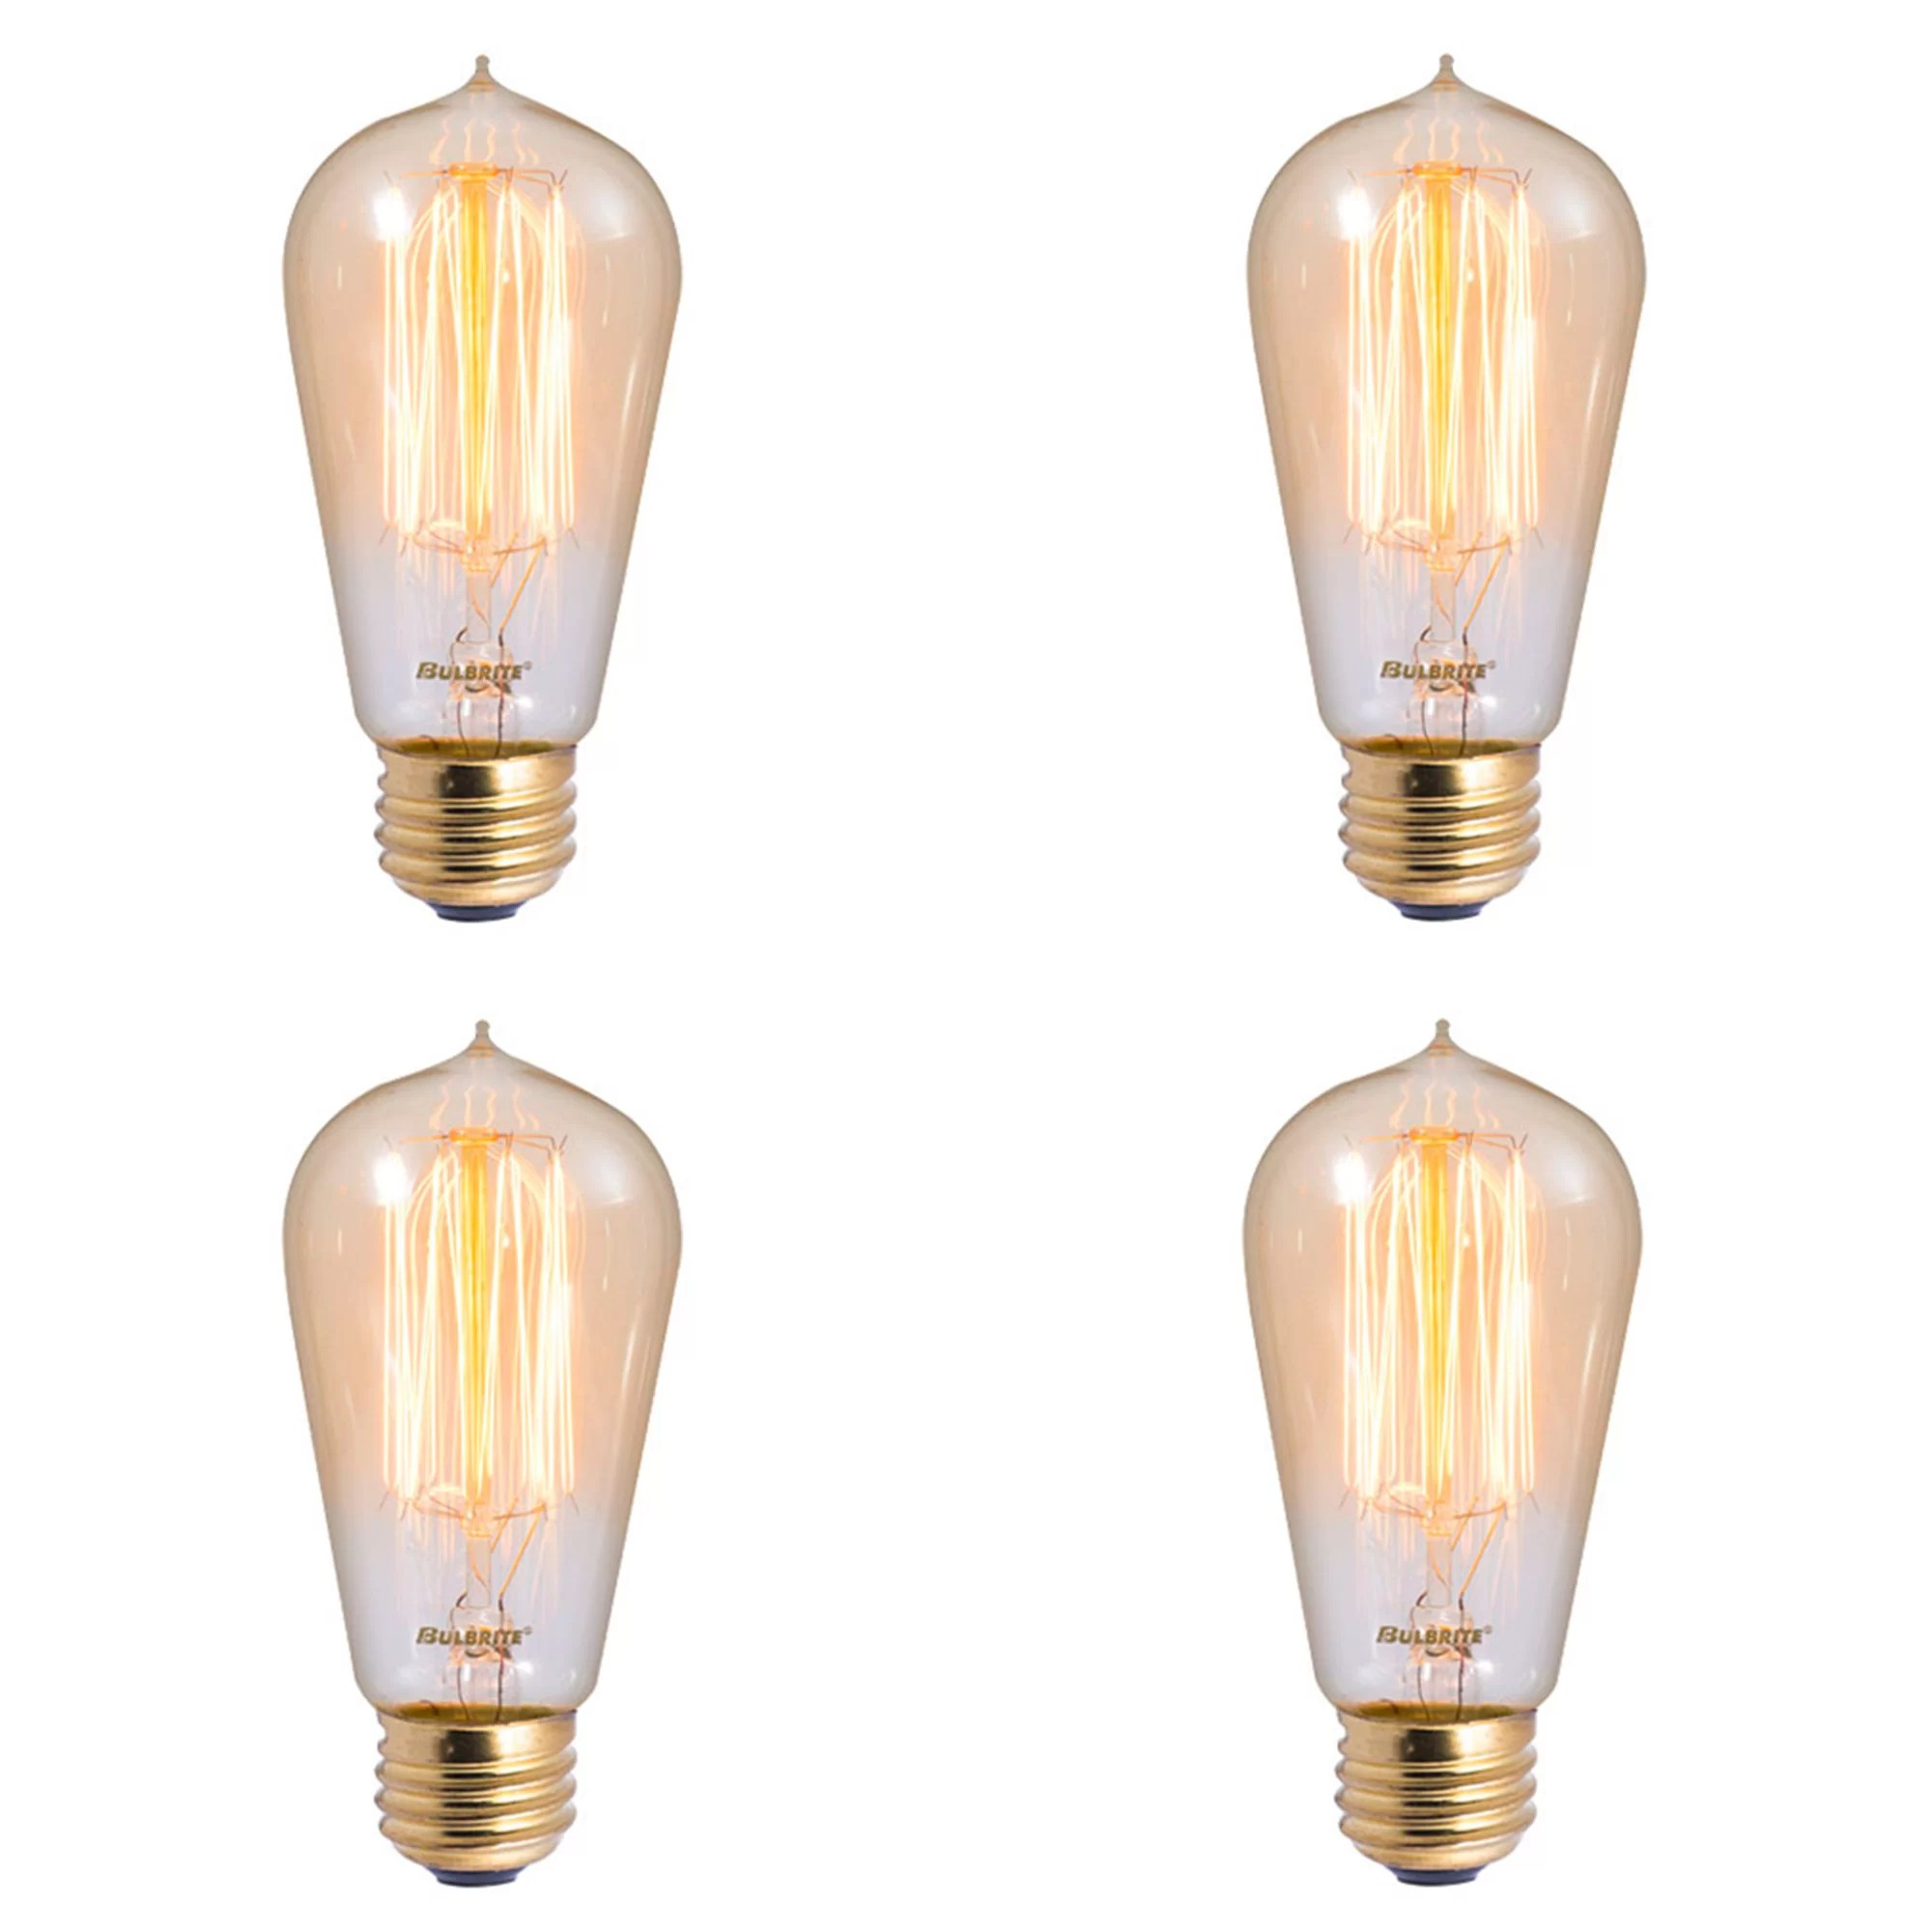 60w Light Bulb 60w E26 Dimmable Incandescent Light Bulb